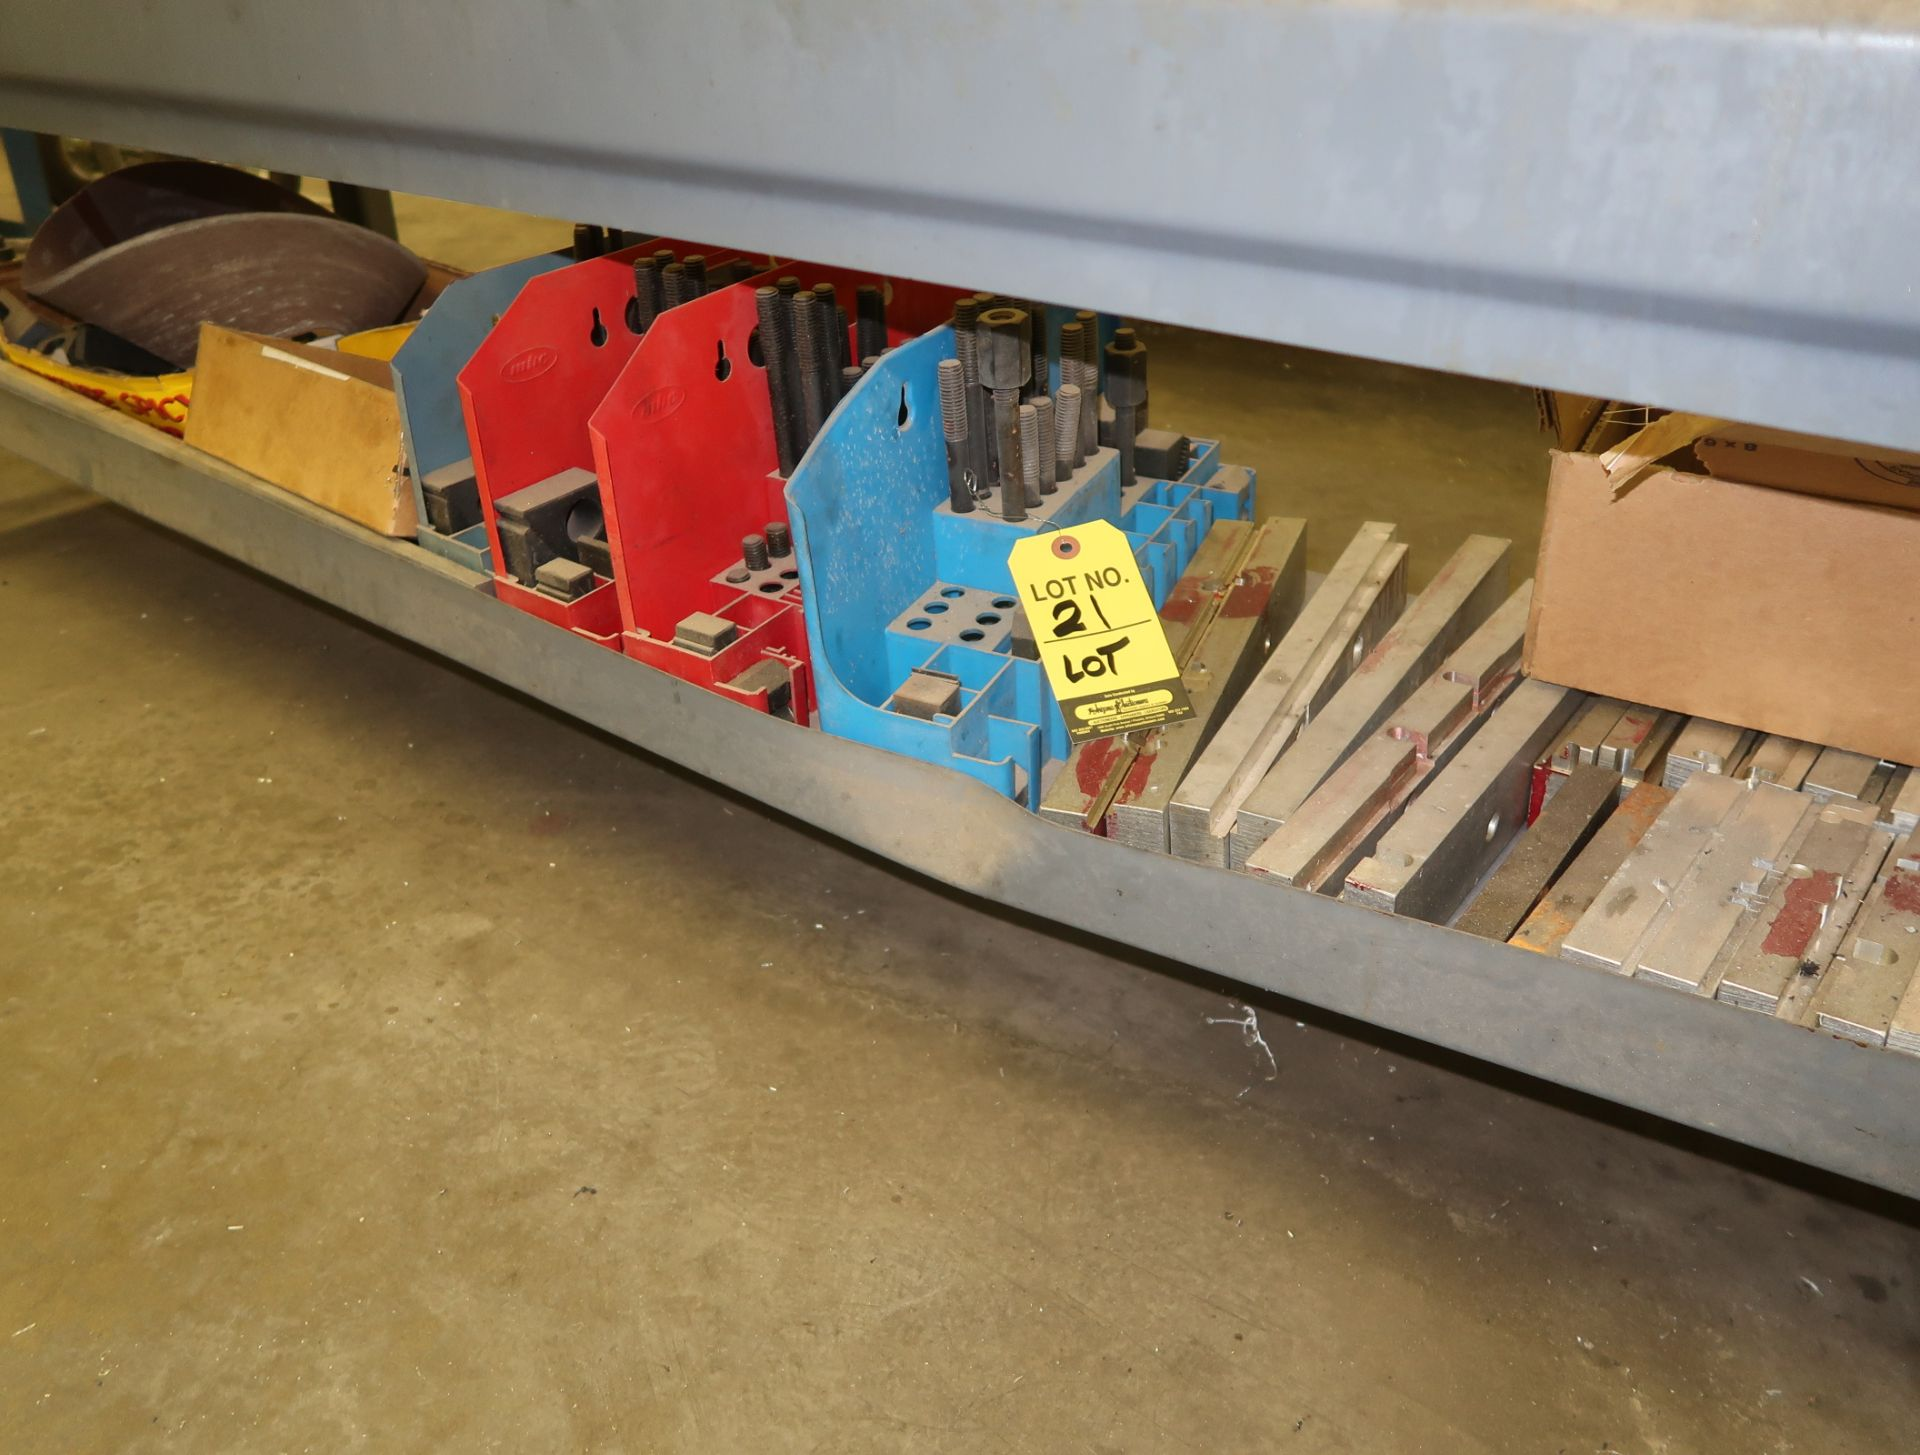 Lot 21 - LOT SHOP TABLE W/ TOOL CLAMP KITS, ETC. UNDER TABLE